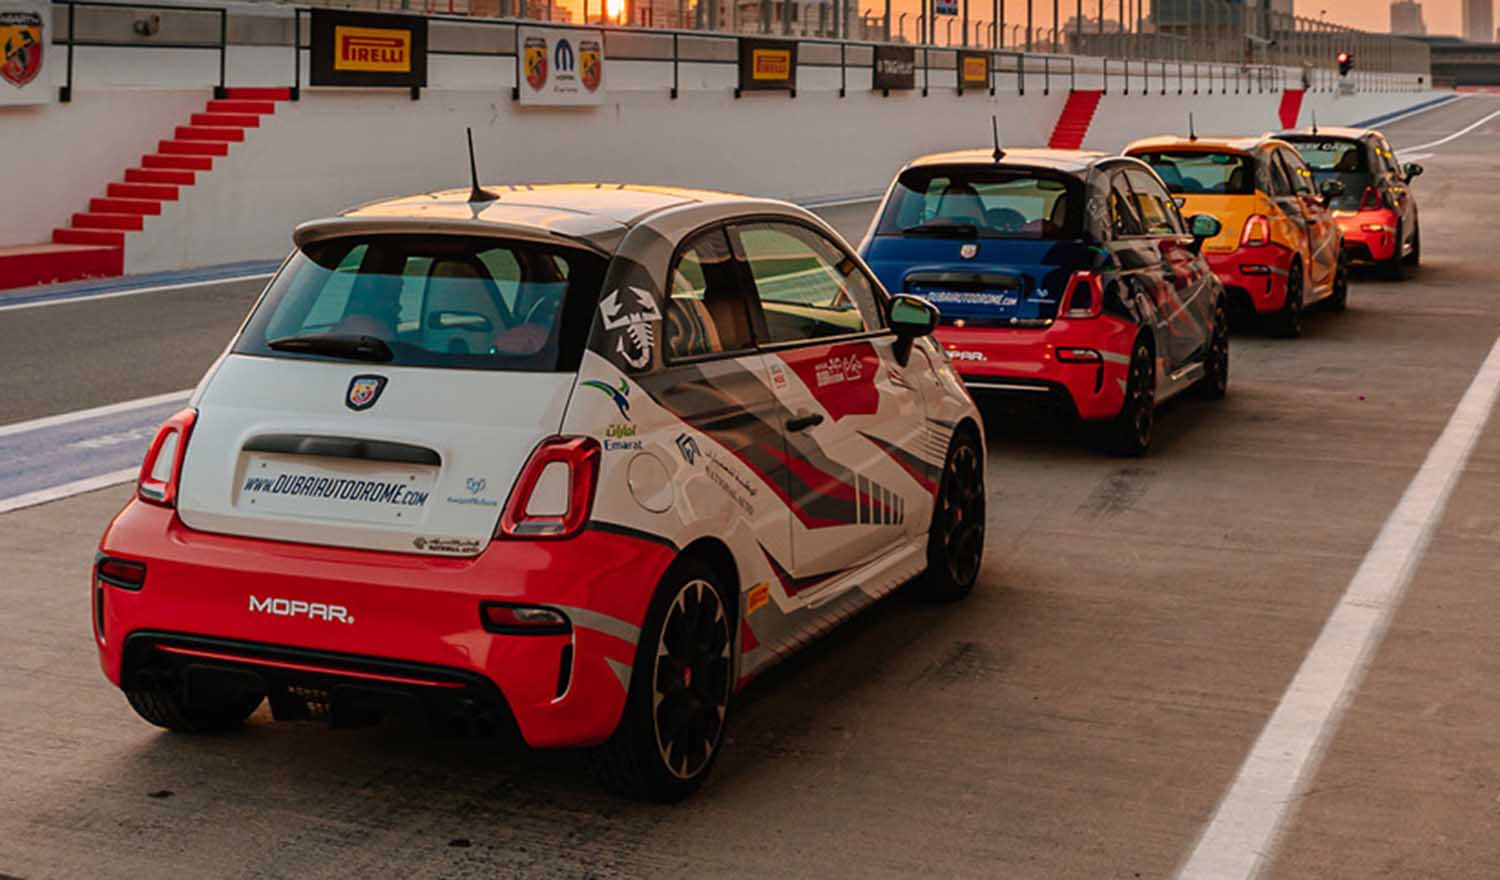 Italian Performance Brand Abarth Announced as the Official Vehicle Partner of Dubai Autodrome for 2021